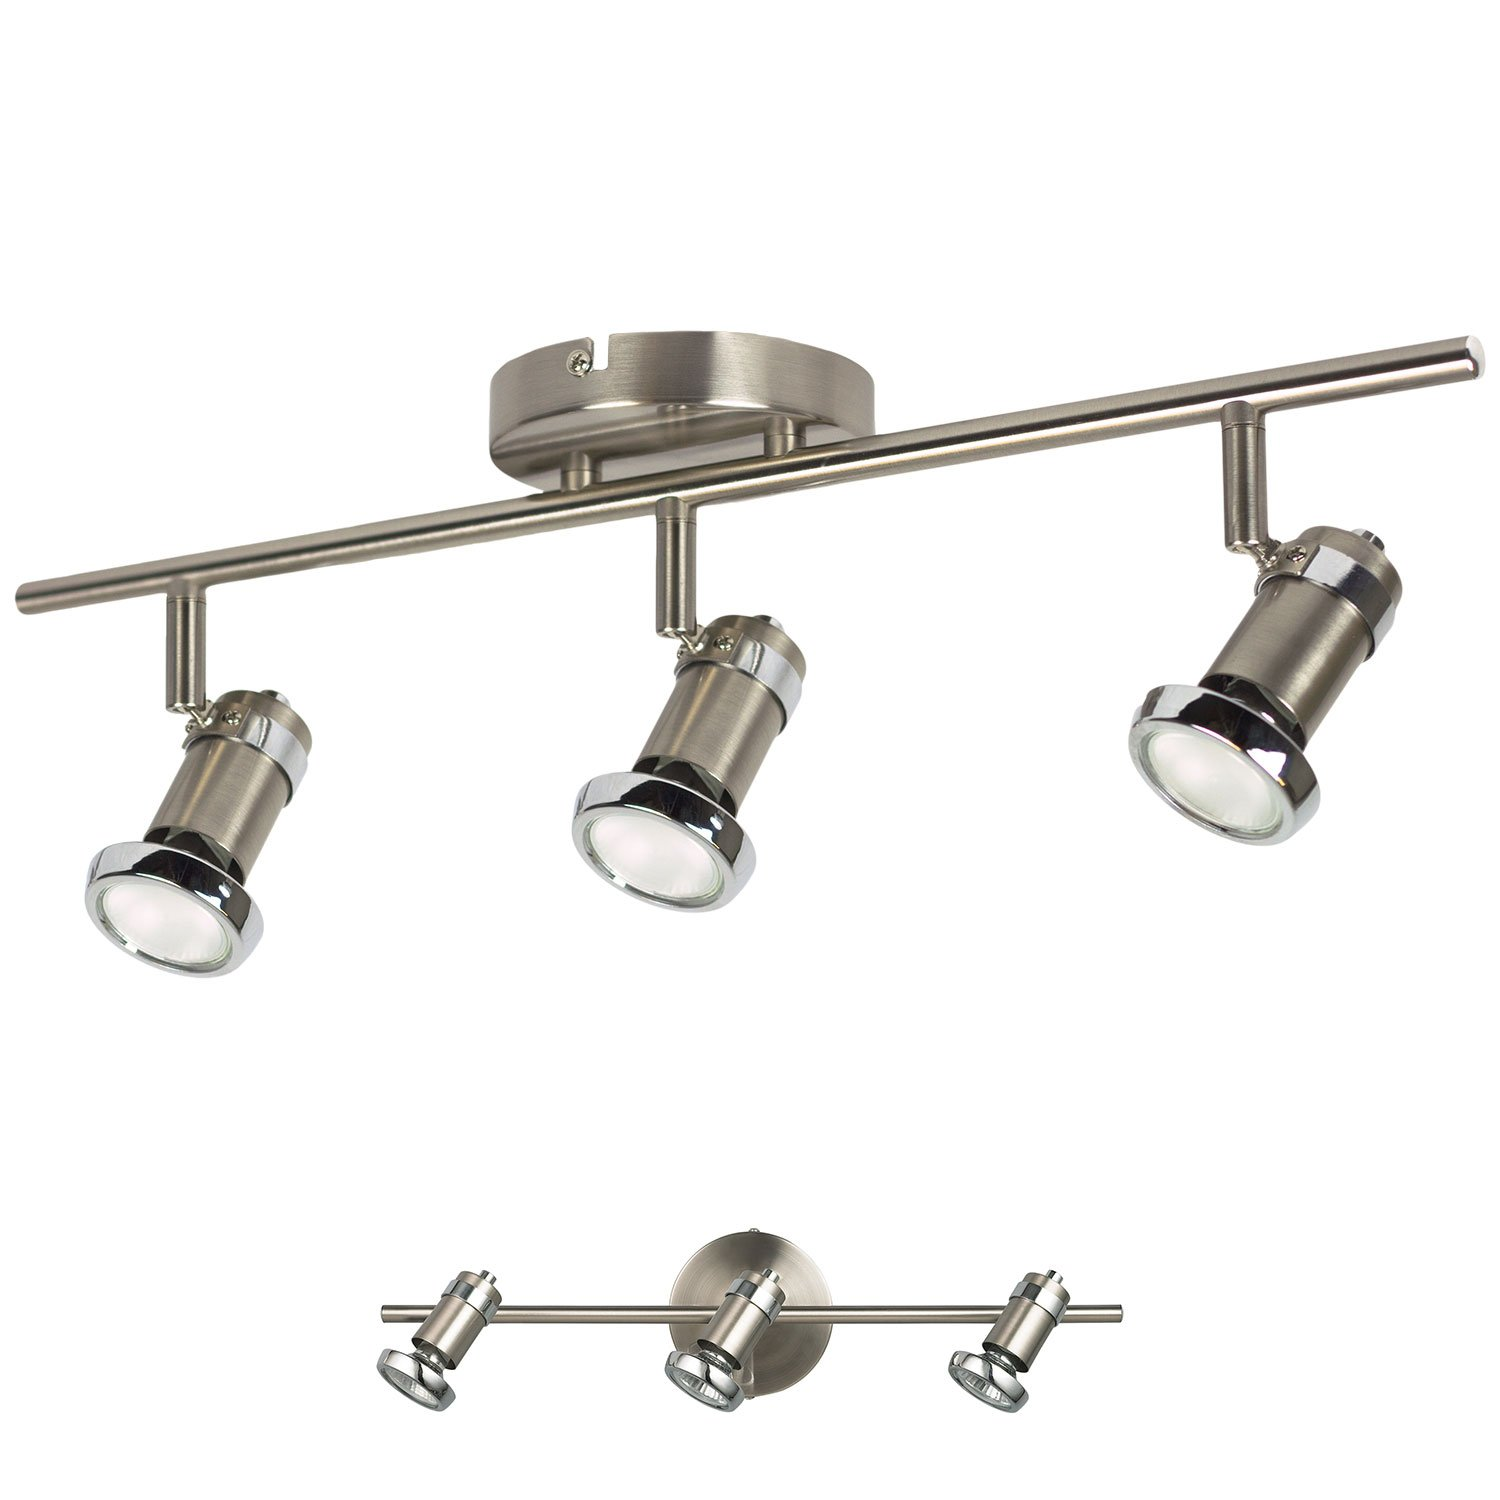 3 Light Track Lighting Adjustable Wall or Ceiling Spot Light Fixture ...